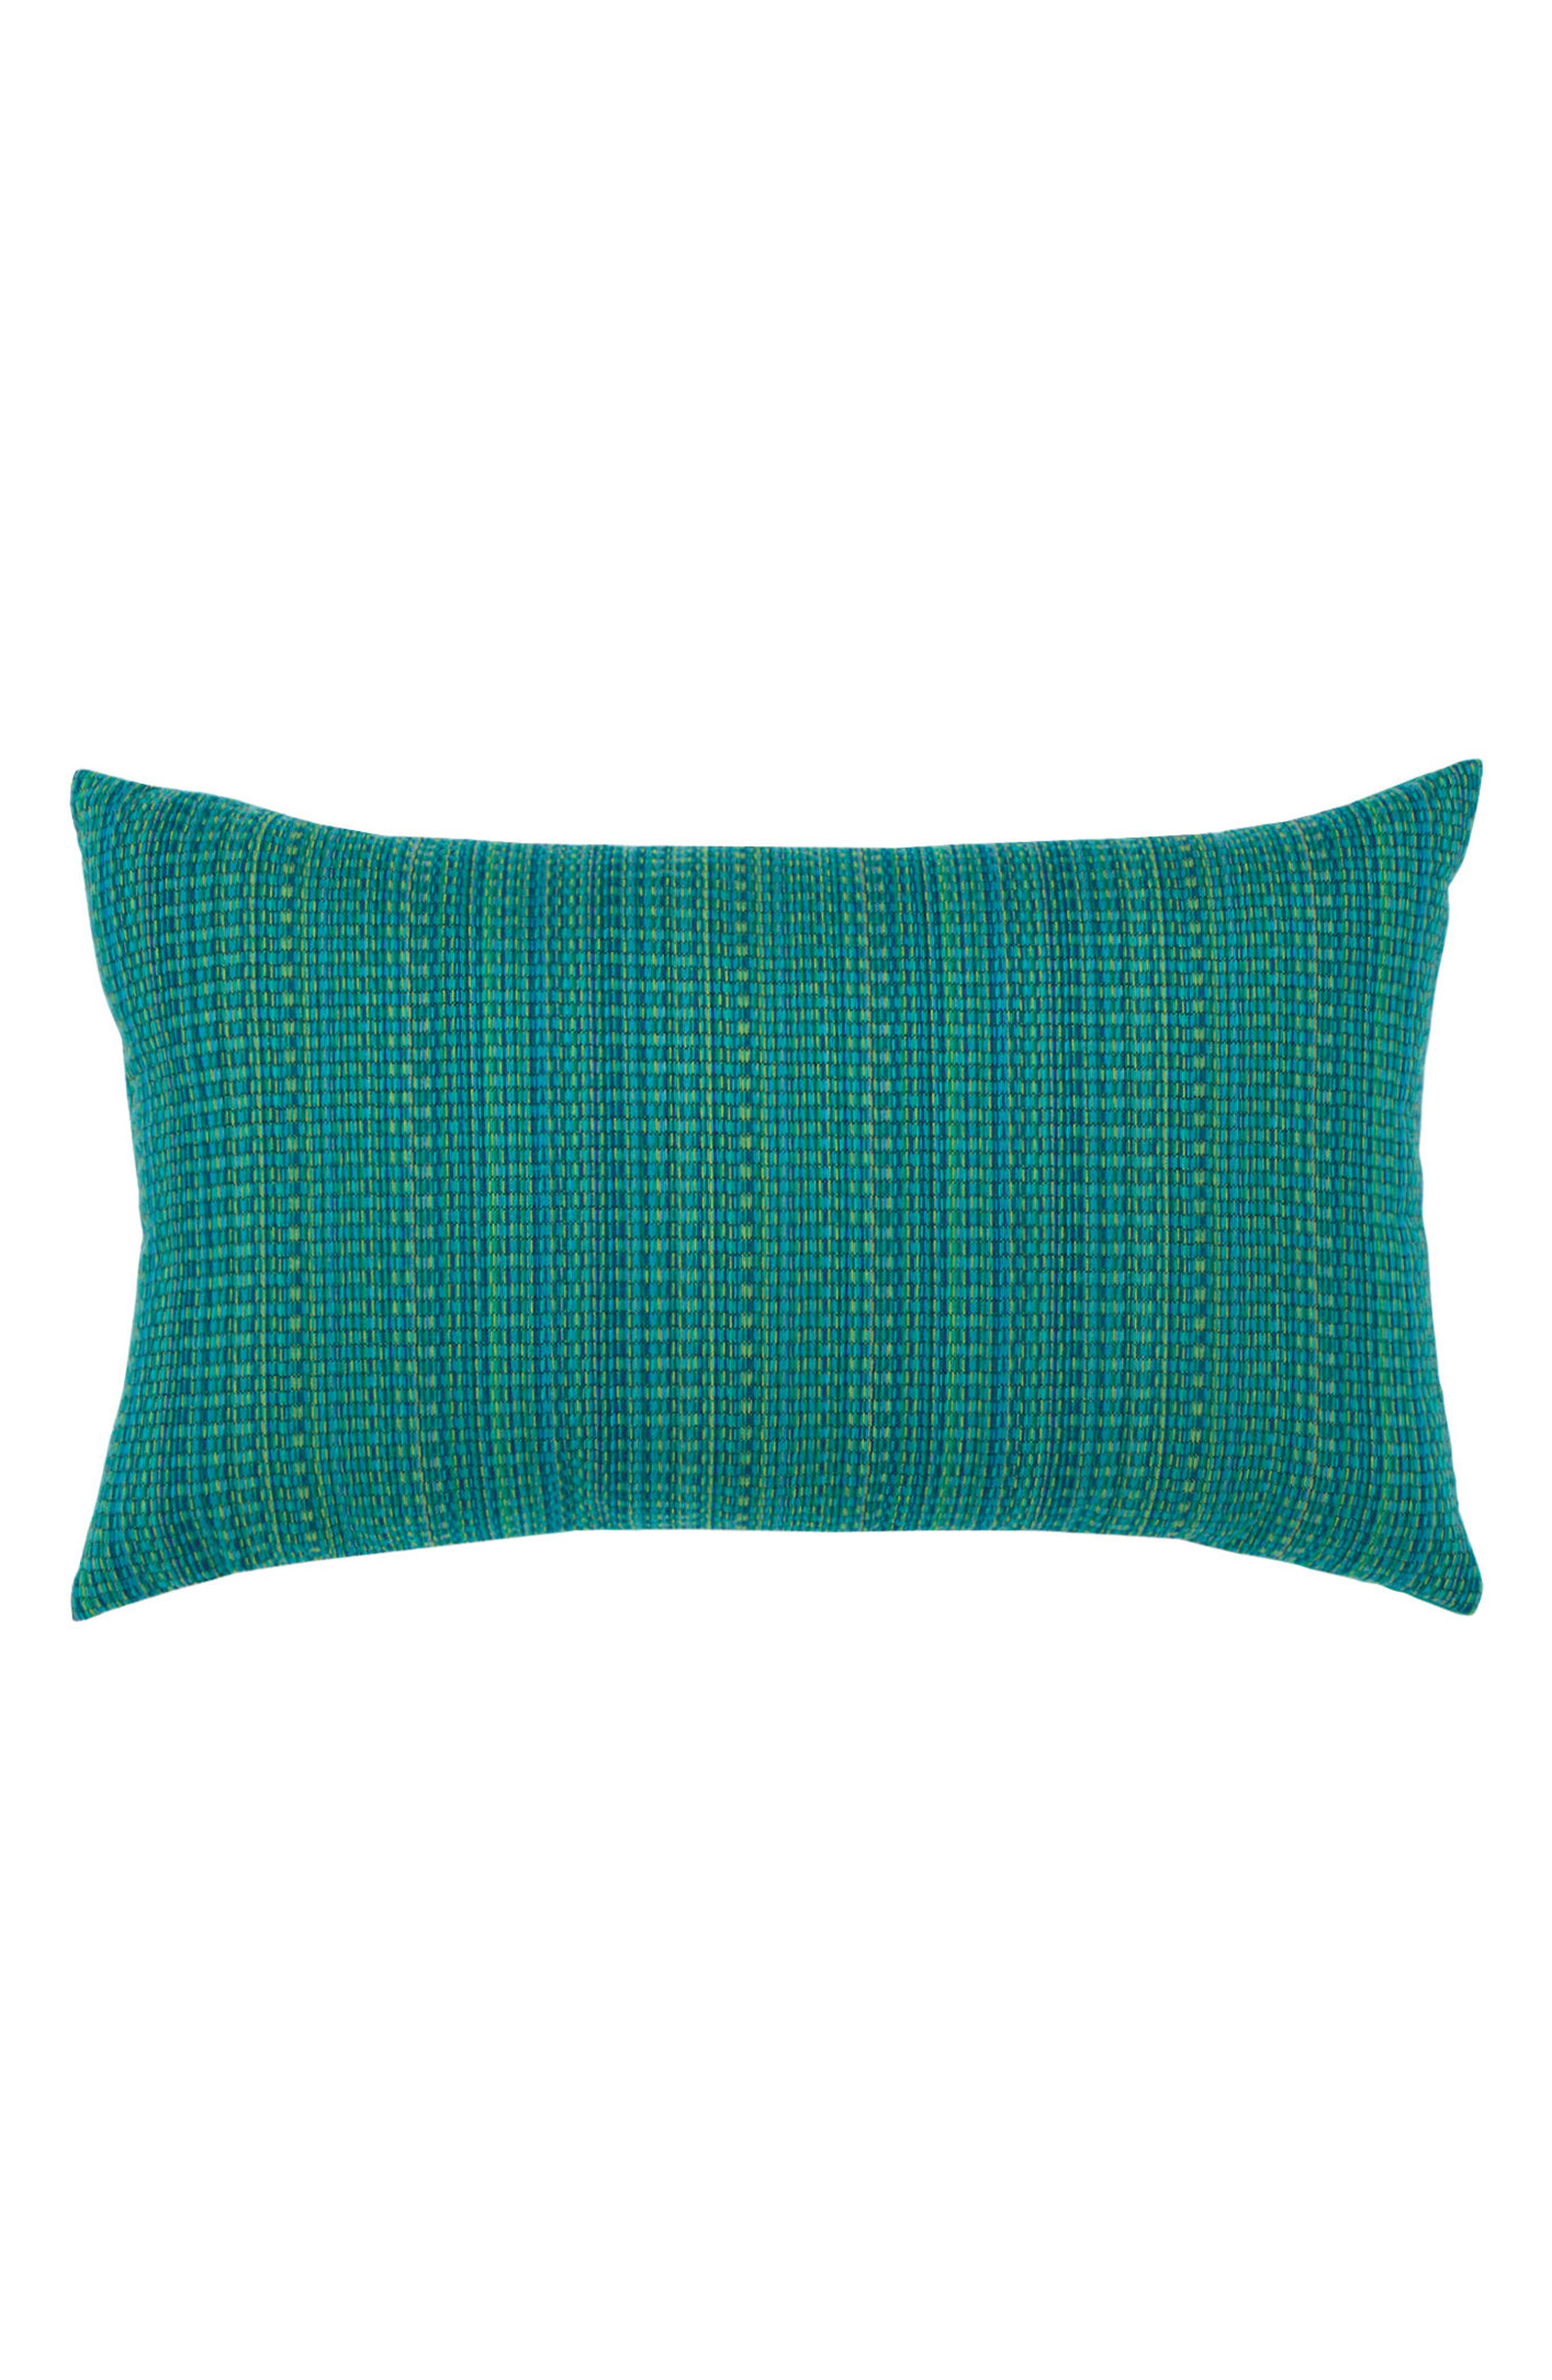 Eden Texture Indoor/Outdoor Accent Pillow,                             Main thumbnail 1, color,                             Blue Green